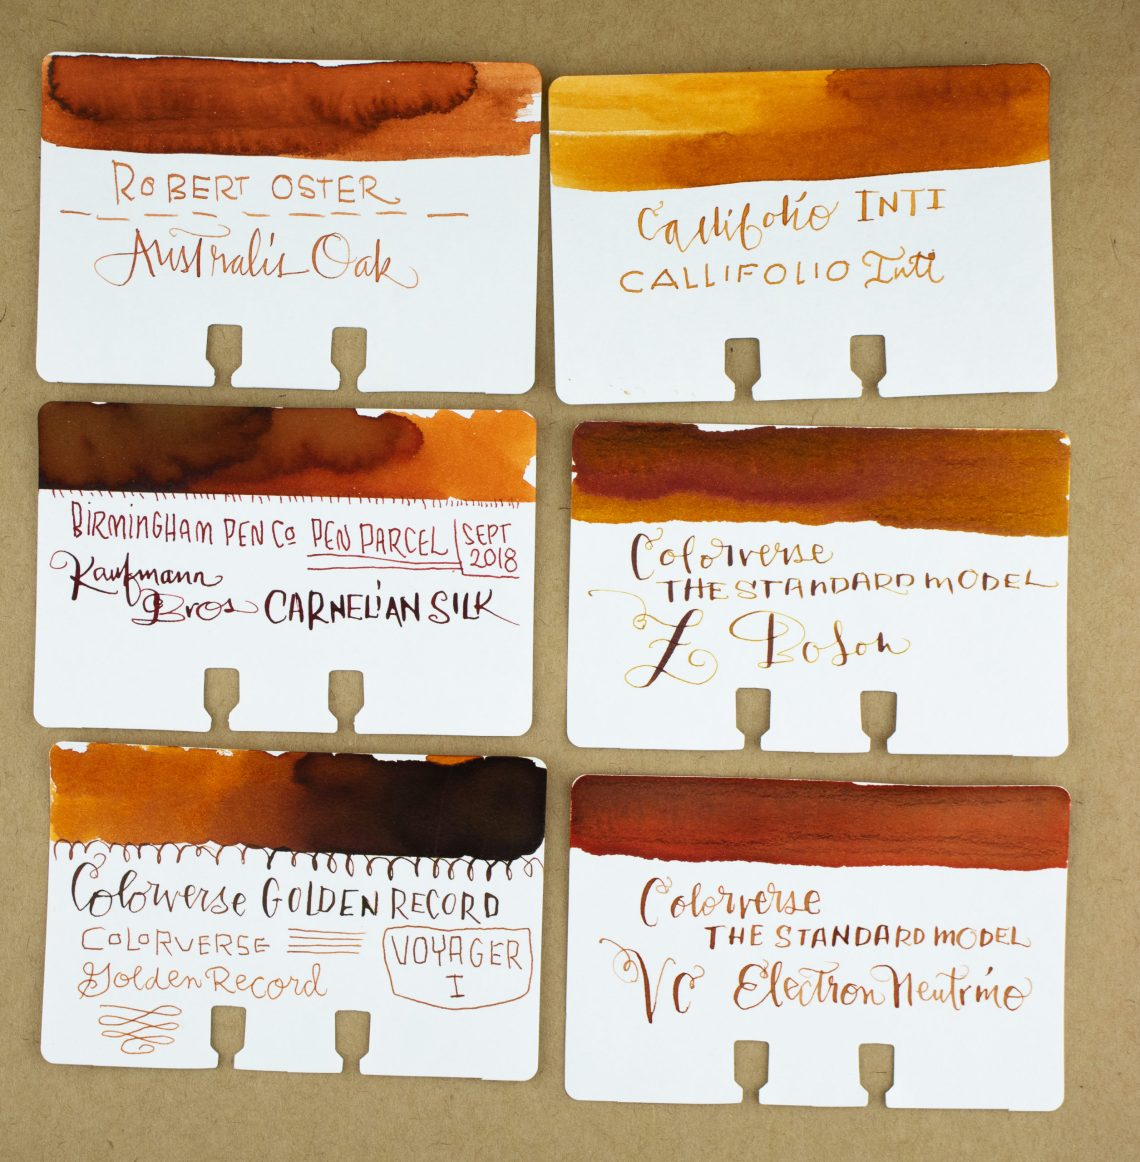 Colorverse Standard Model Z Boson & Electon Neutrino Ink Comparisons